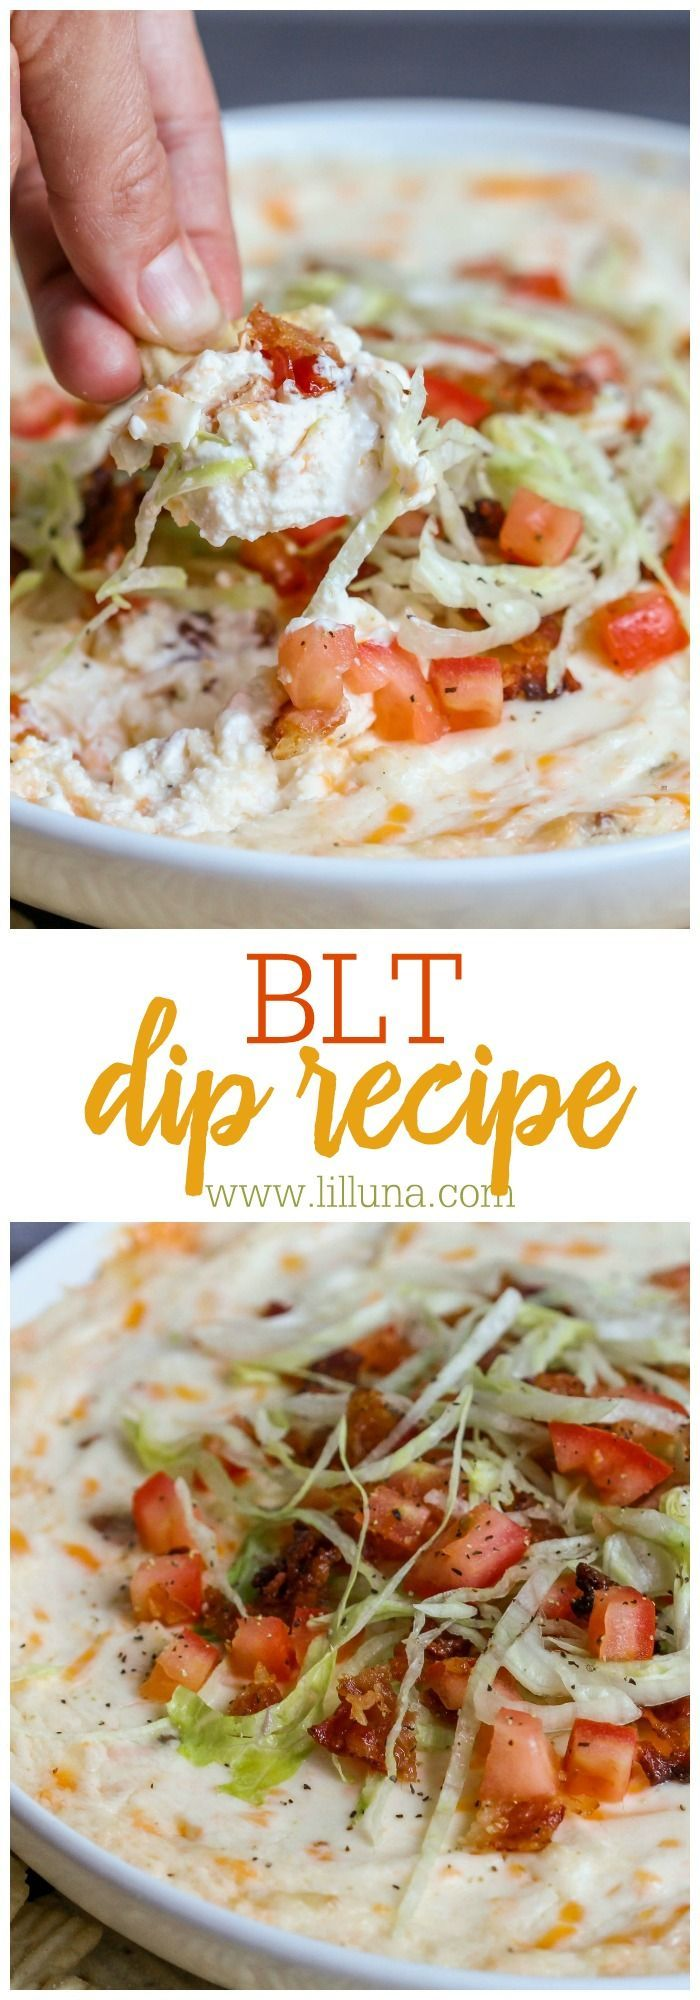 BLT Dip Recipe. Game day food.